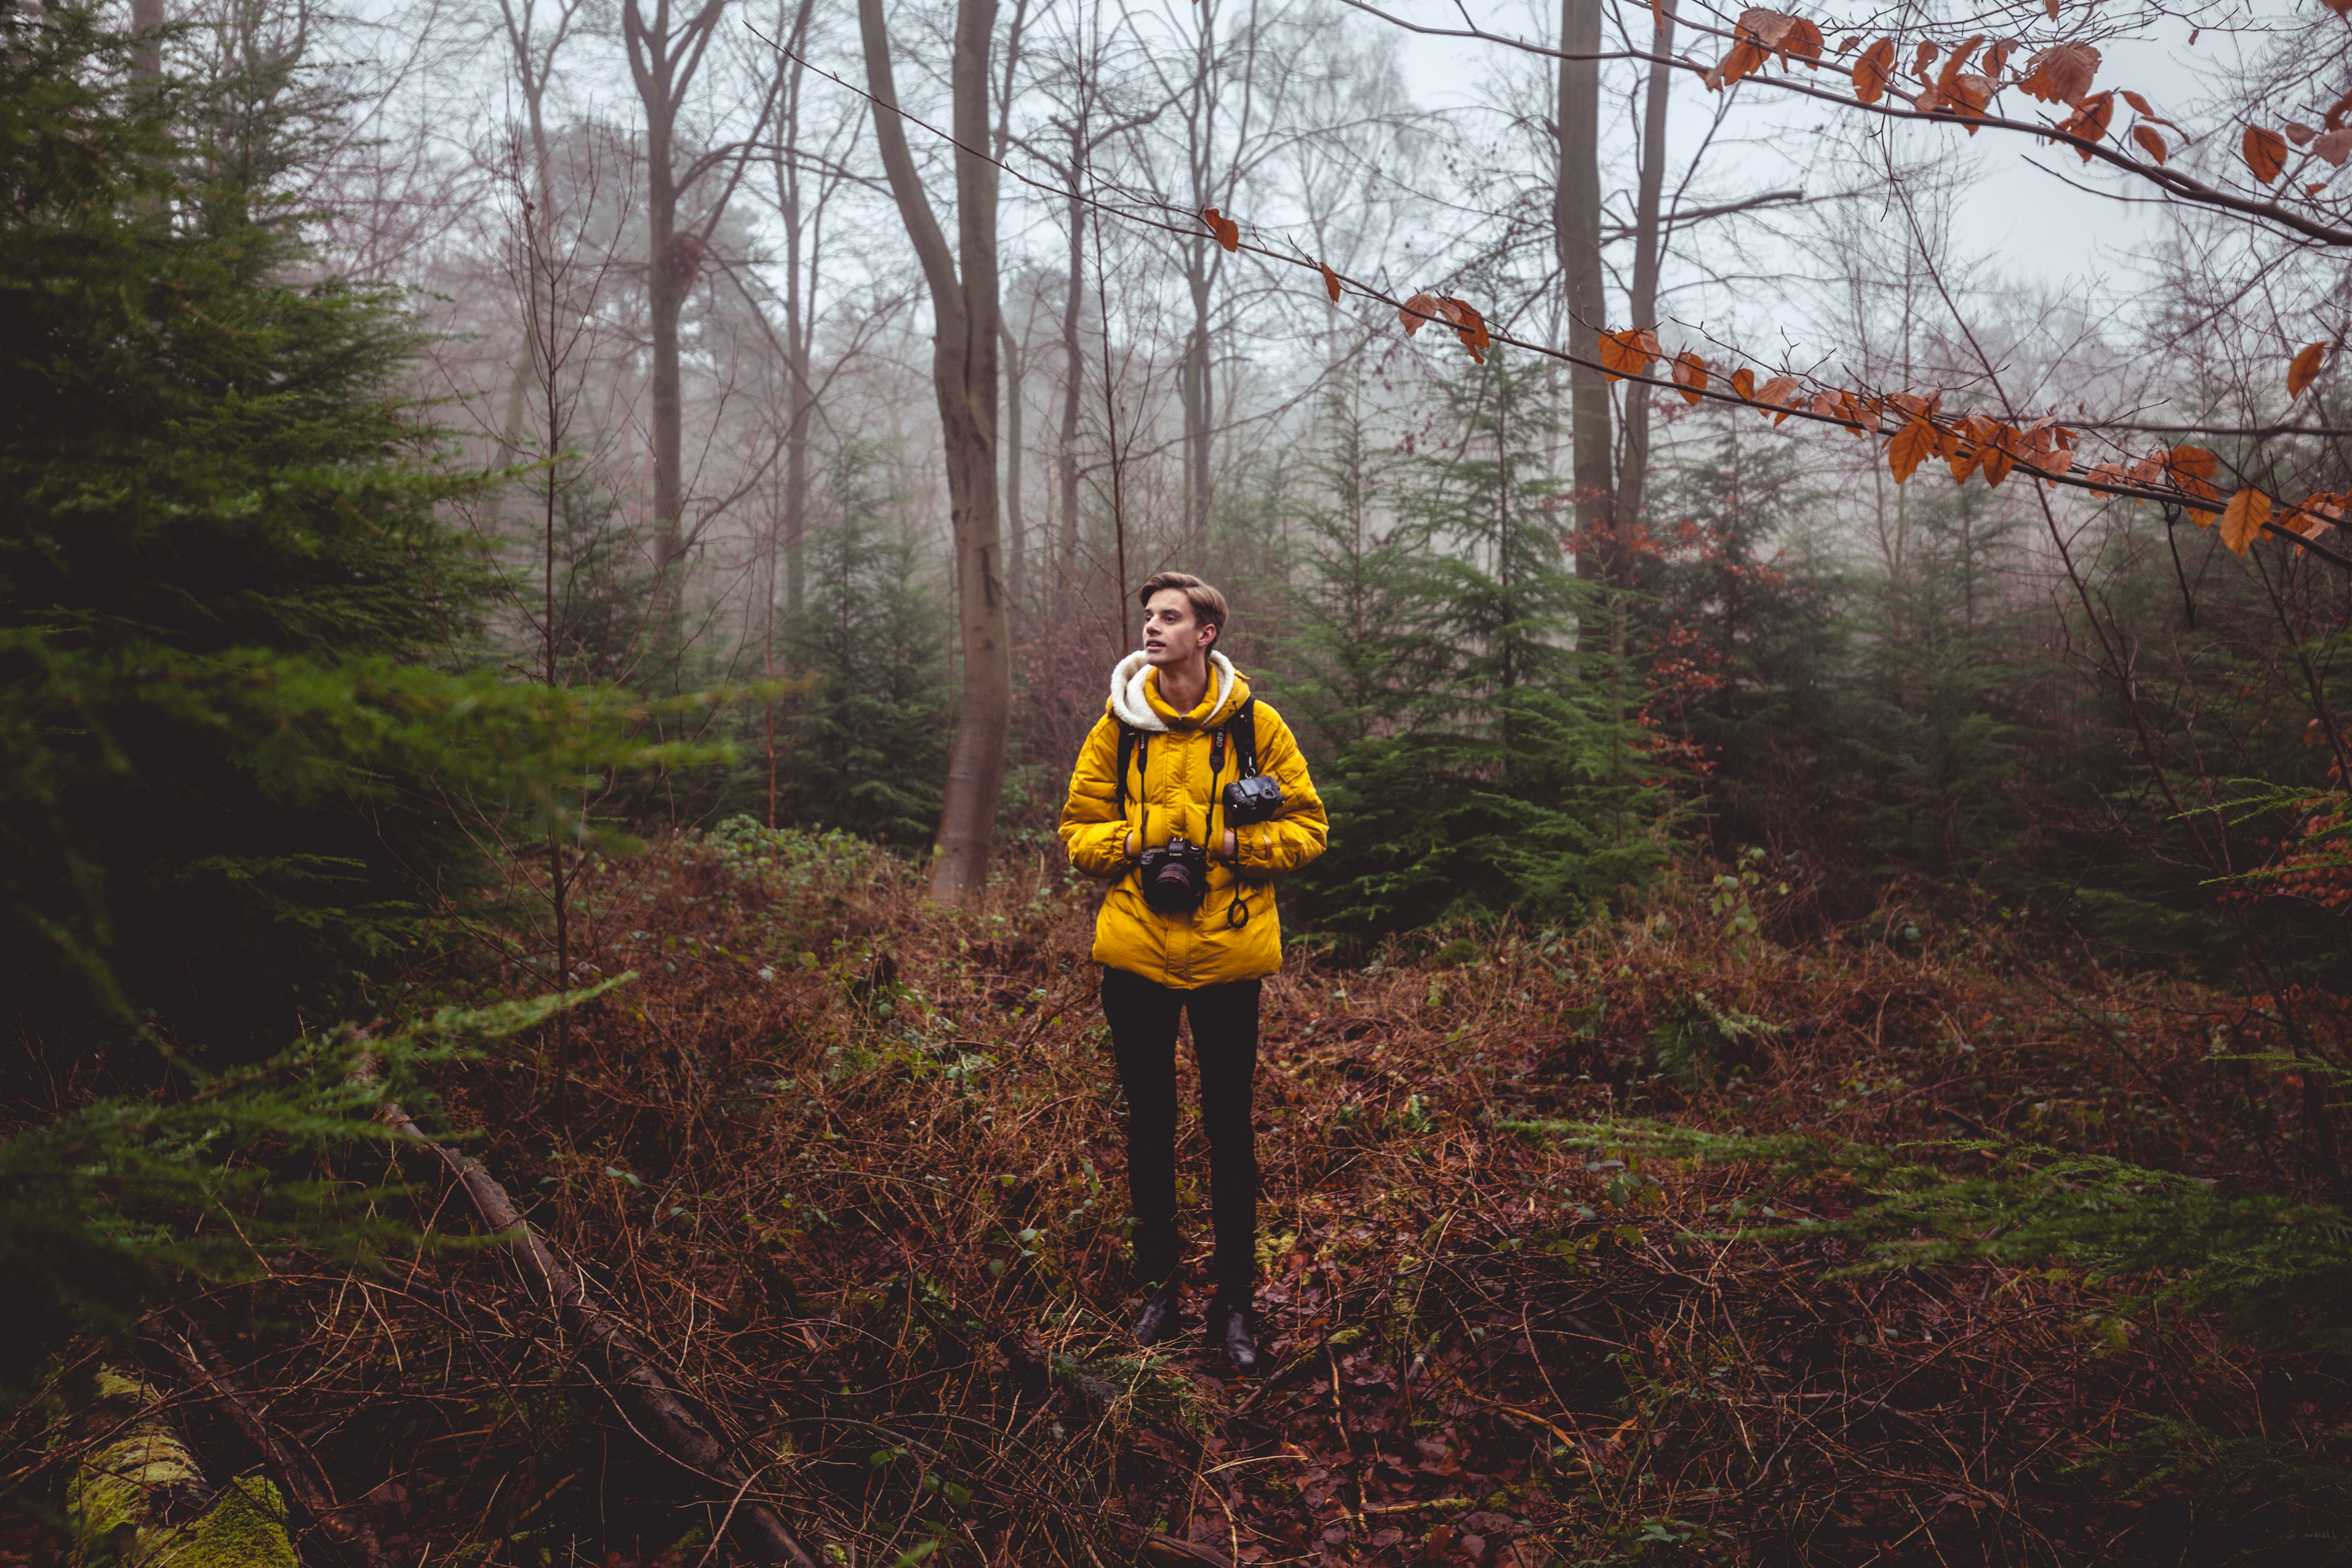 man in yellow jacket holding black camera standing on brown grasses under trees